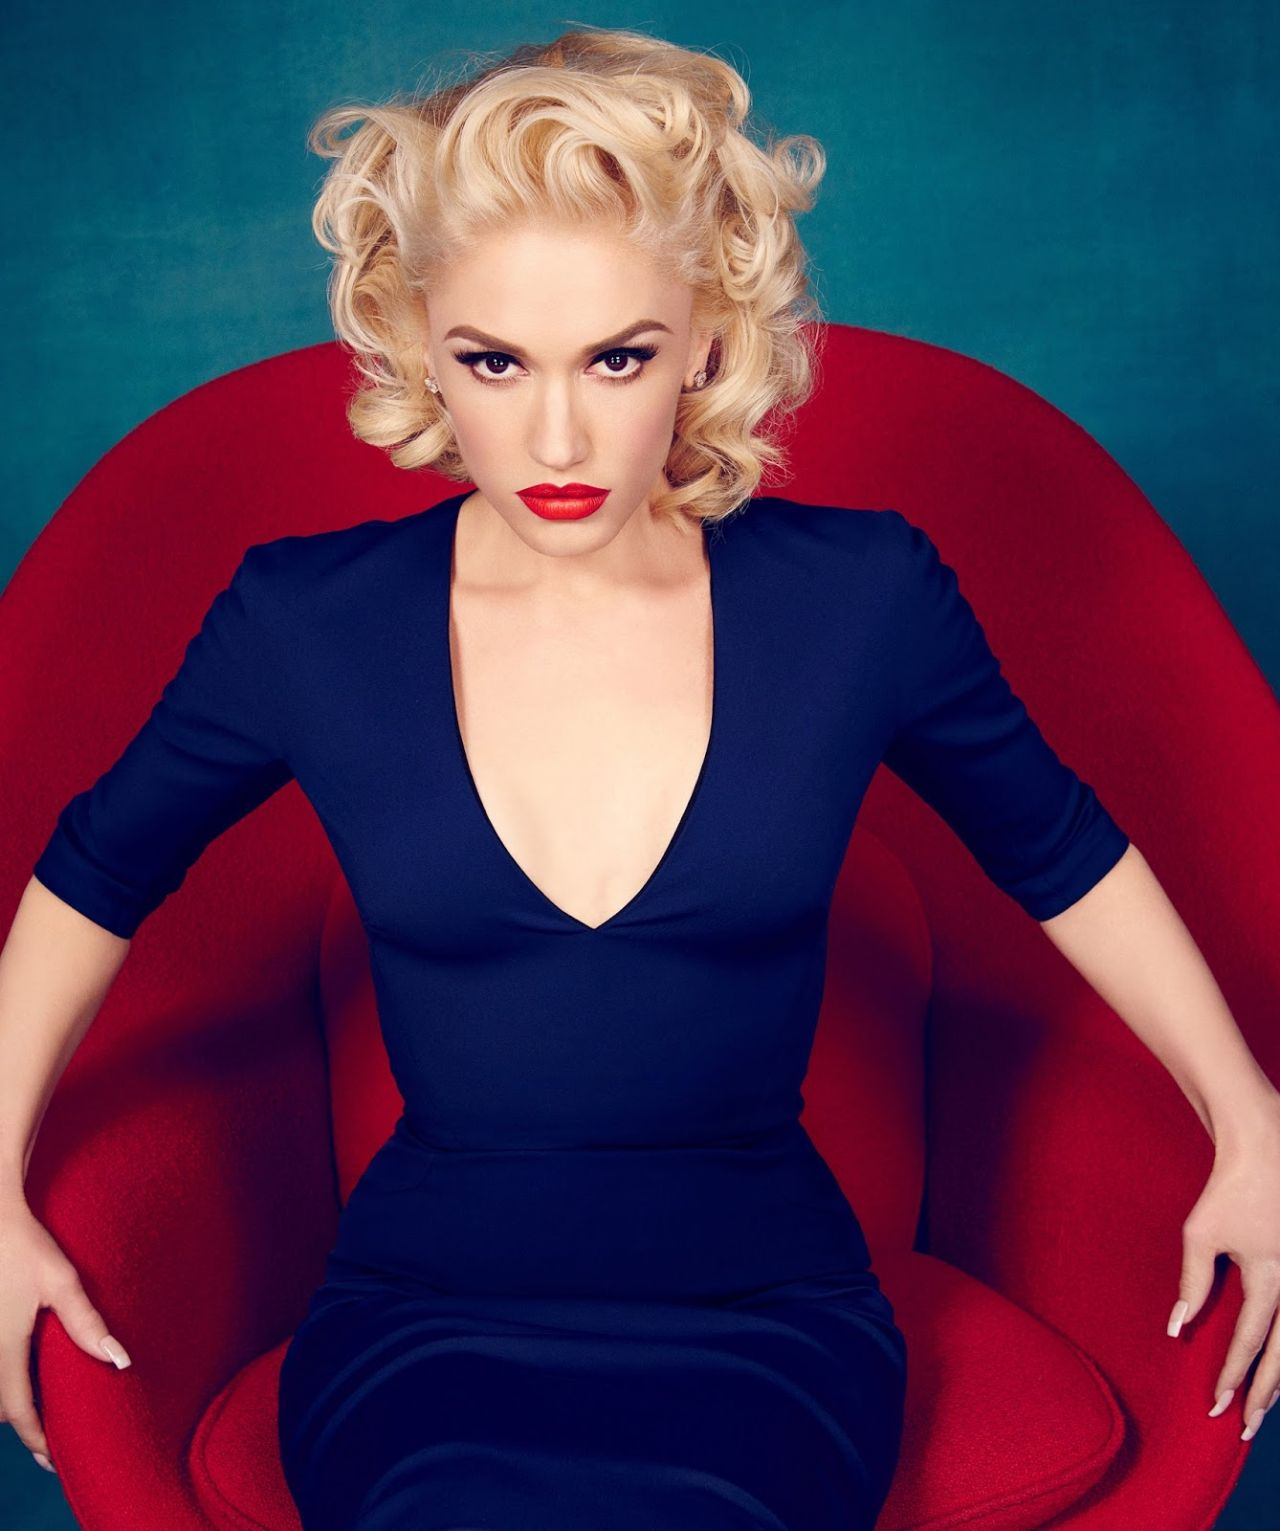 Gwen Stefani – Make Me Like You 2016 Gwen Stefani